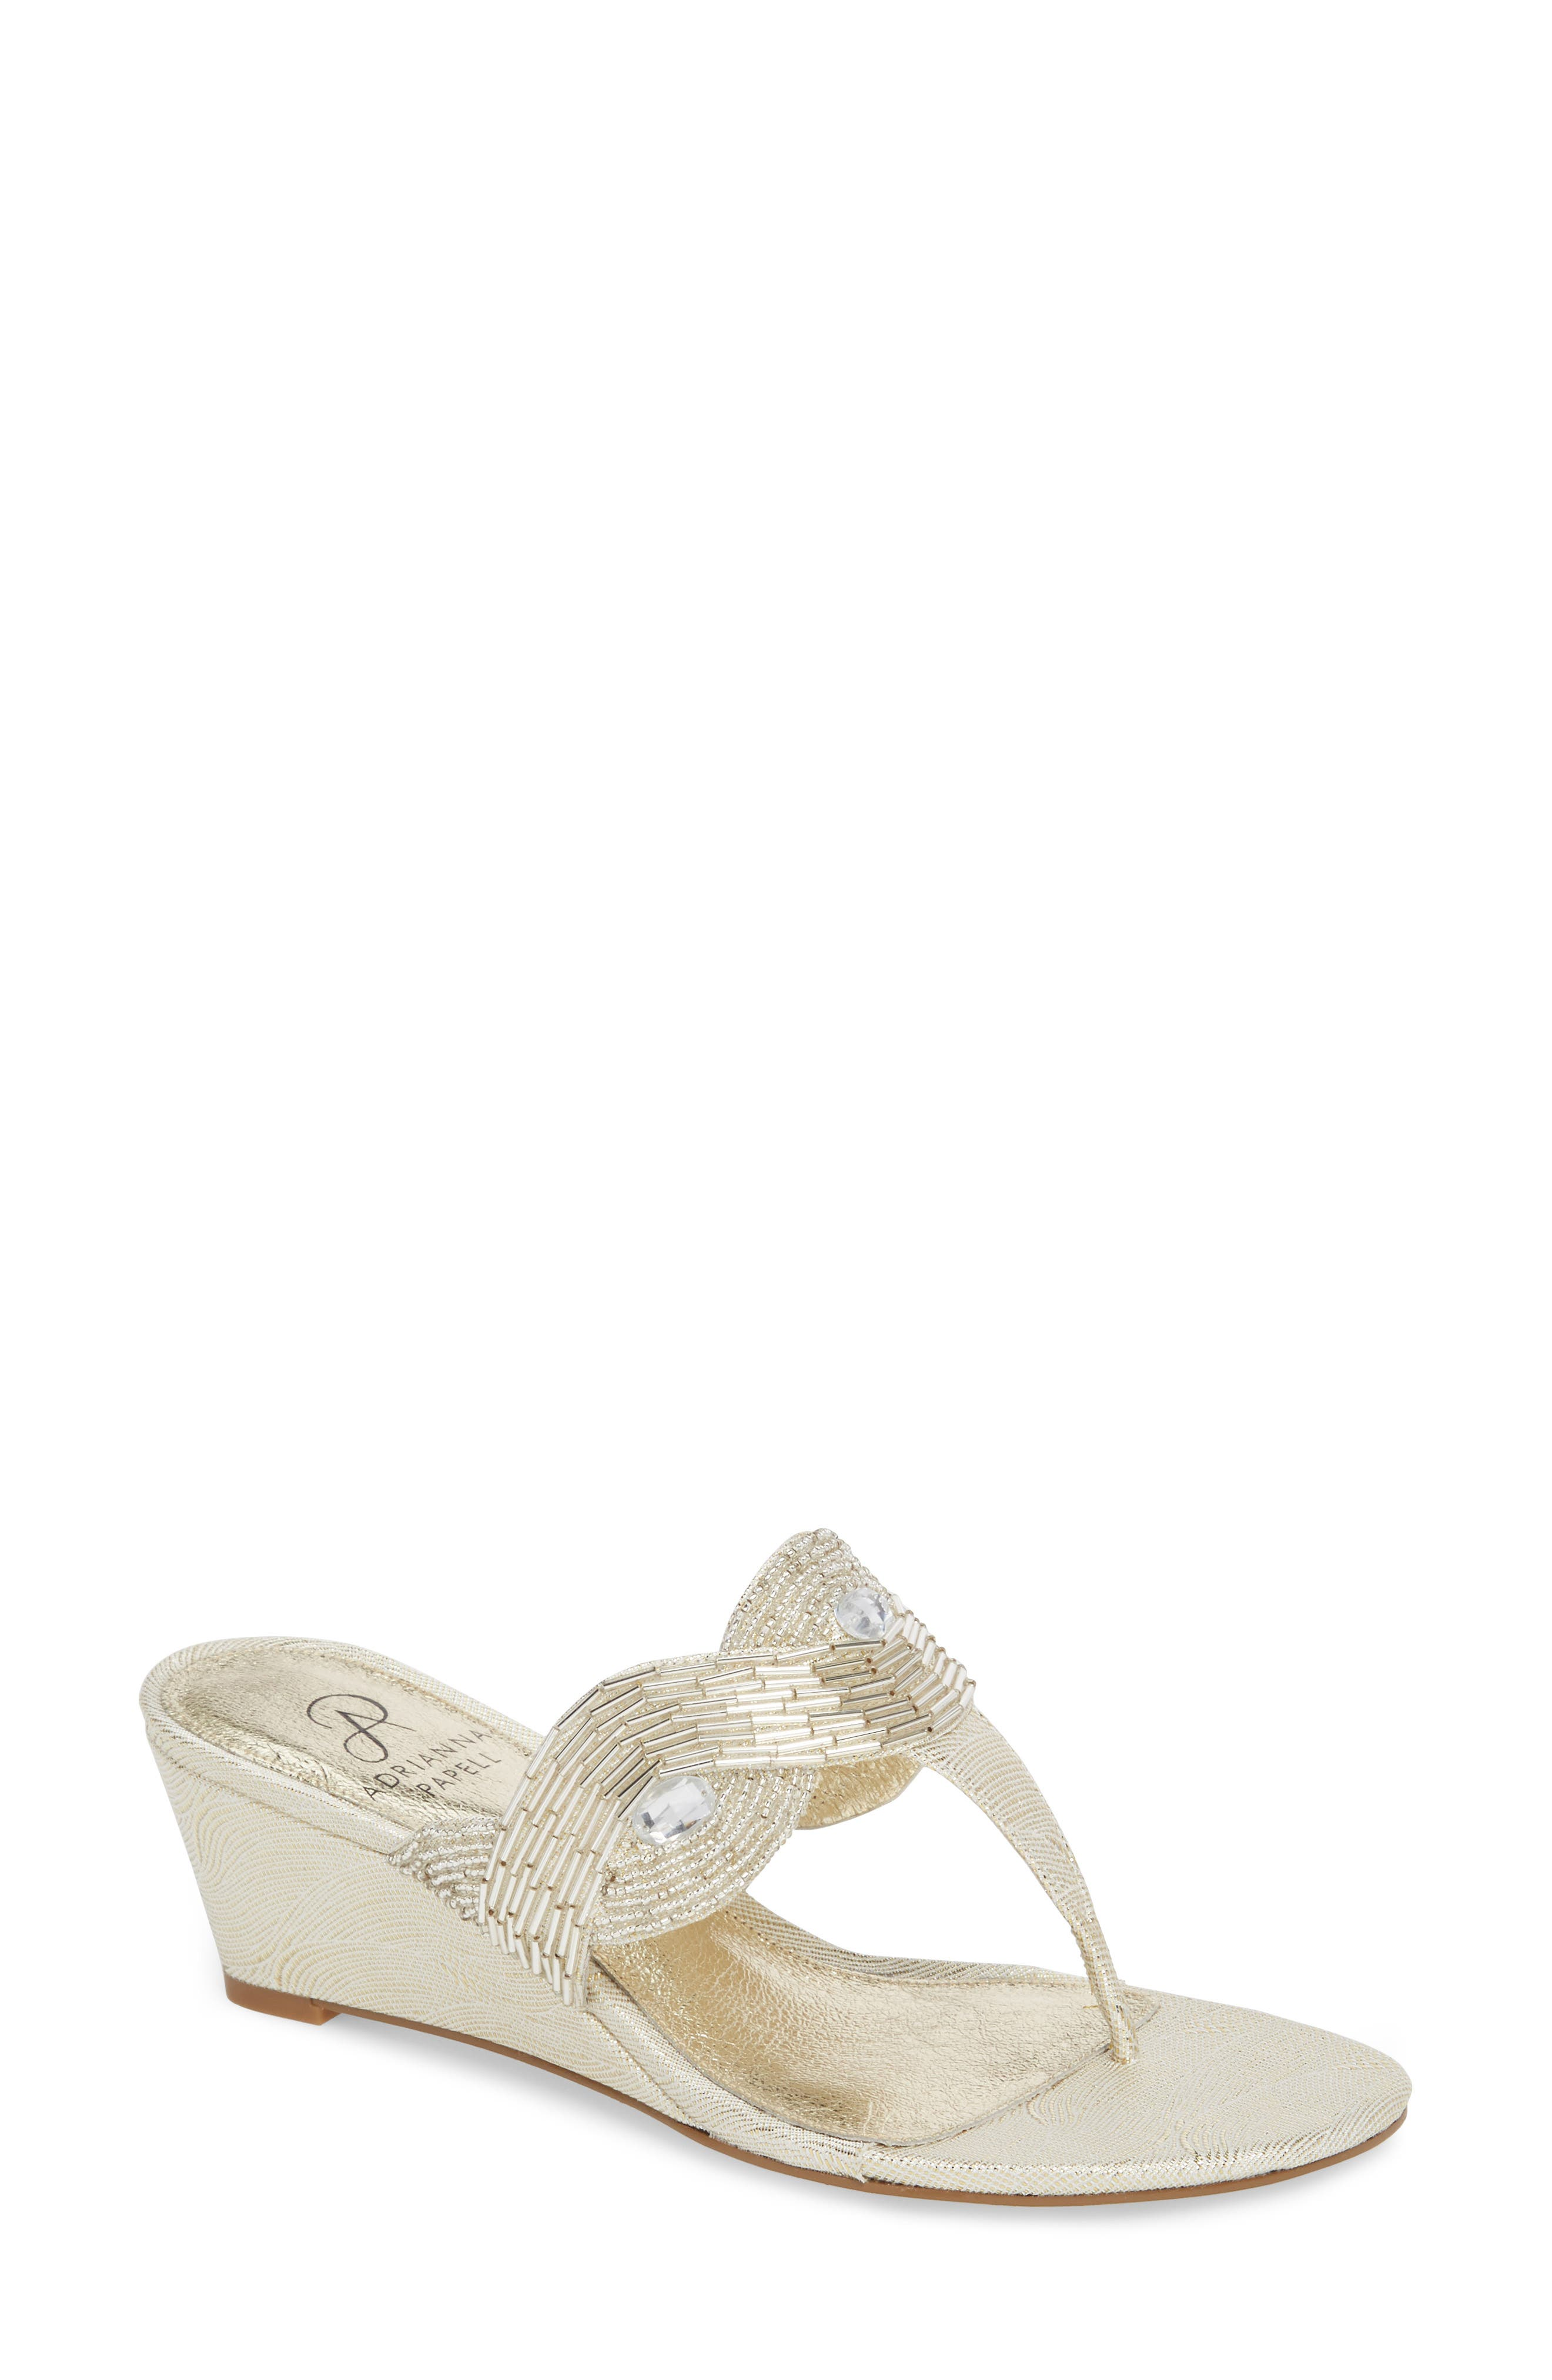 Coco Beaded Wedge Sandal,                         Main,                         color, Pearl Fabric